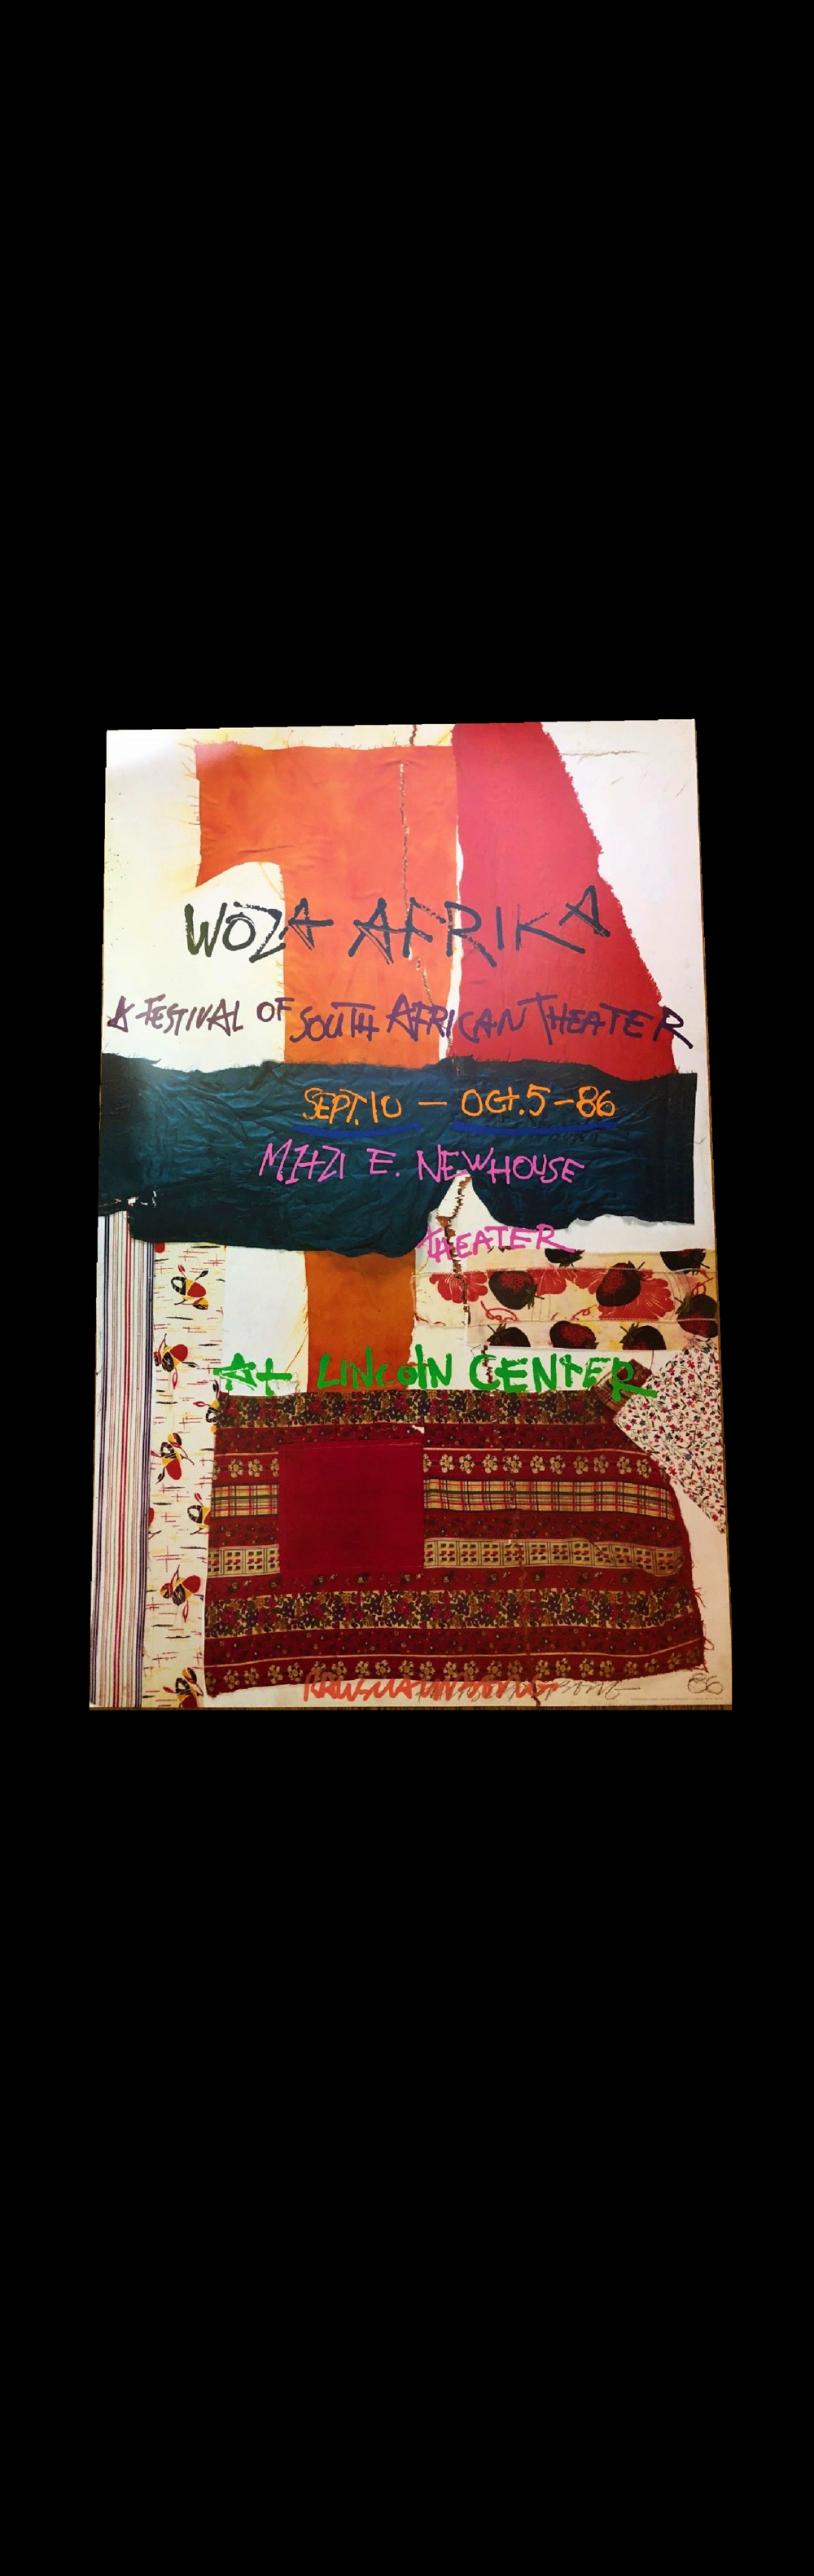 """WOZA Afrika"",  1988, signed poster, edition of 200."